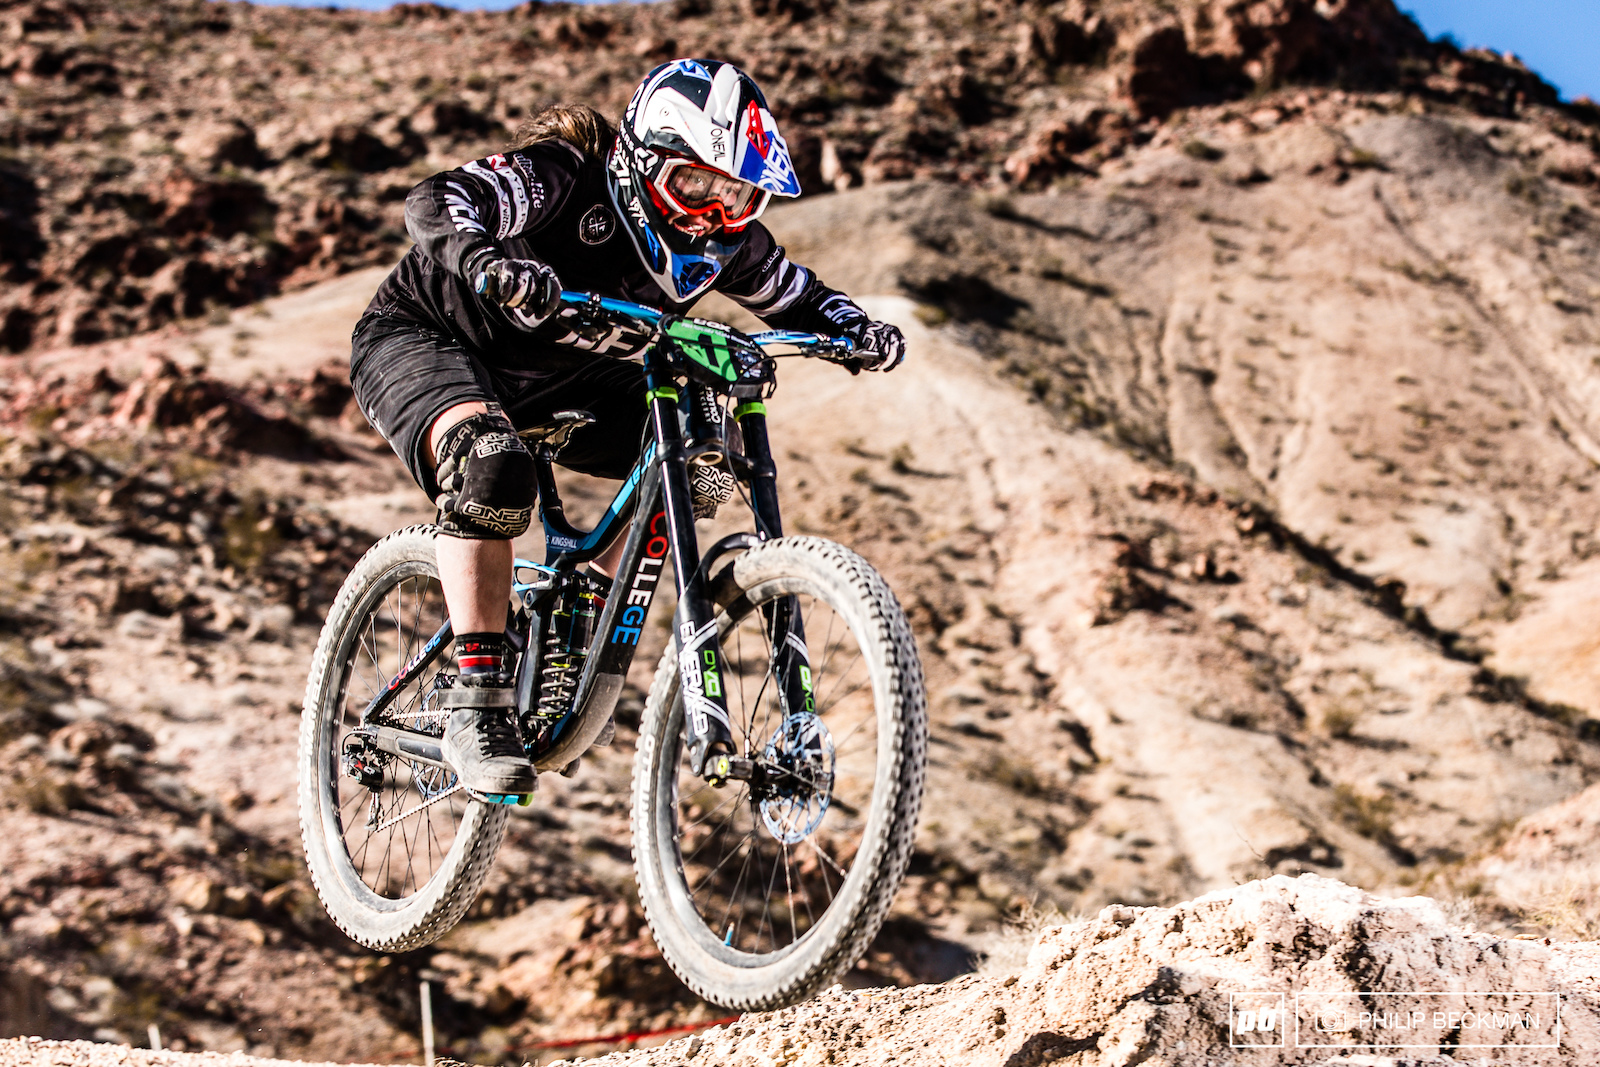 It was a good weekend for Samantha Kingshill College Cyclery O Neal going 3-1-1 in Super D Dual Slalom and Downhill respectively.